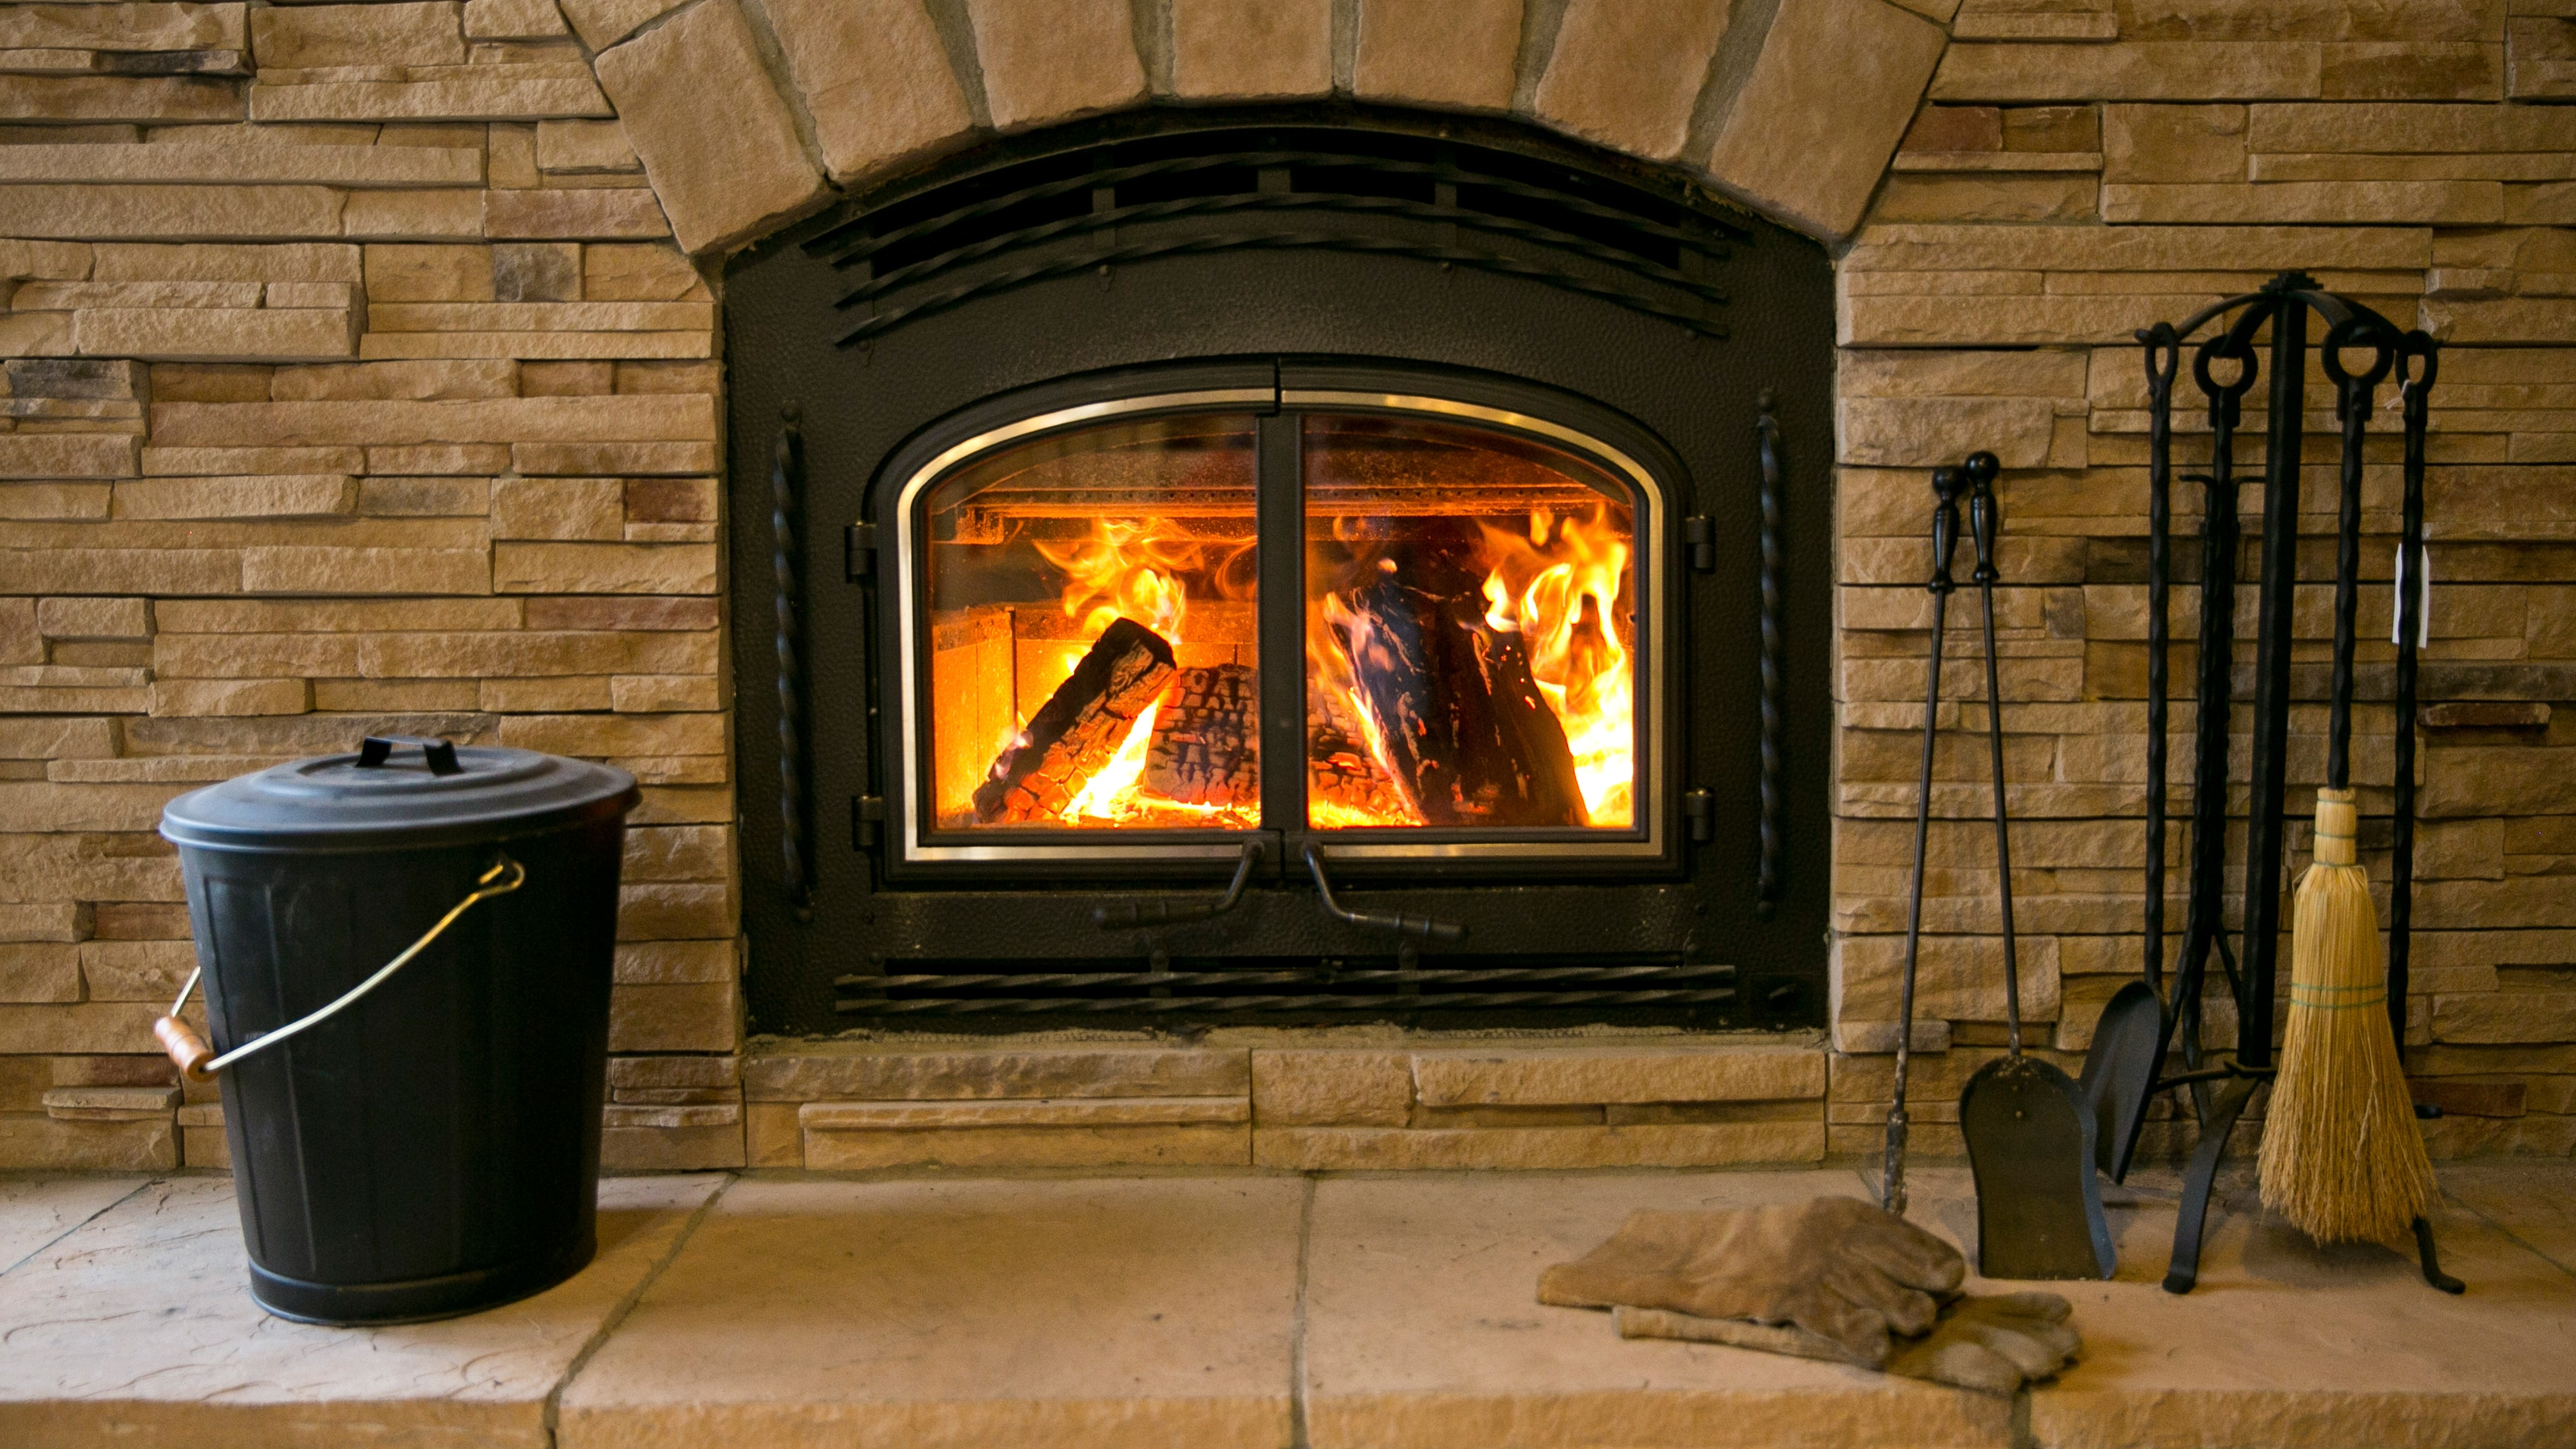 Fireplace Damper Open or Closed Best Of How to Convert A Gas Fireplace to Wood Burning